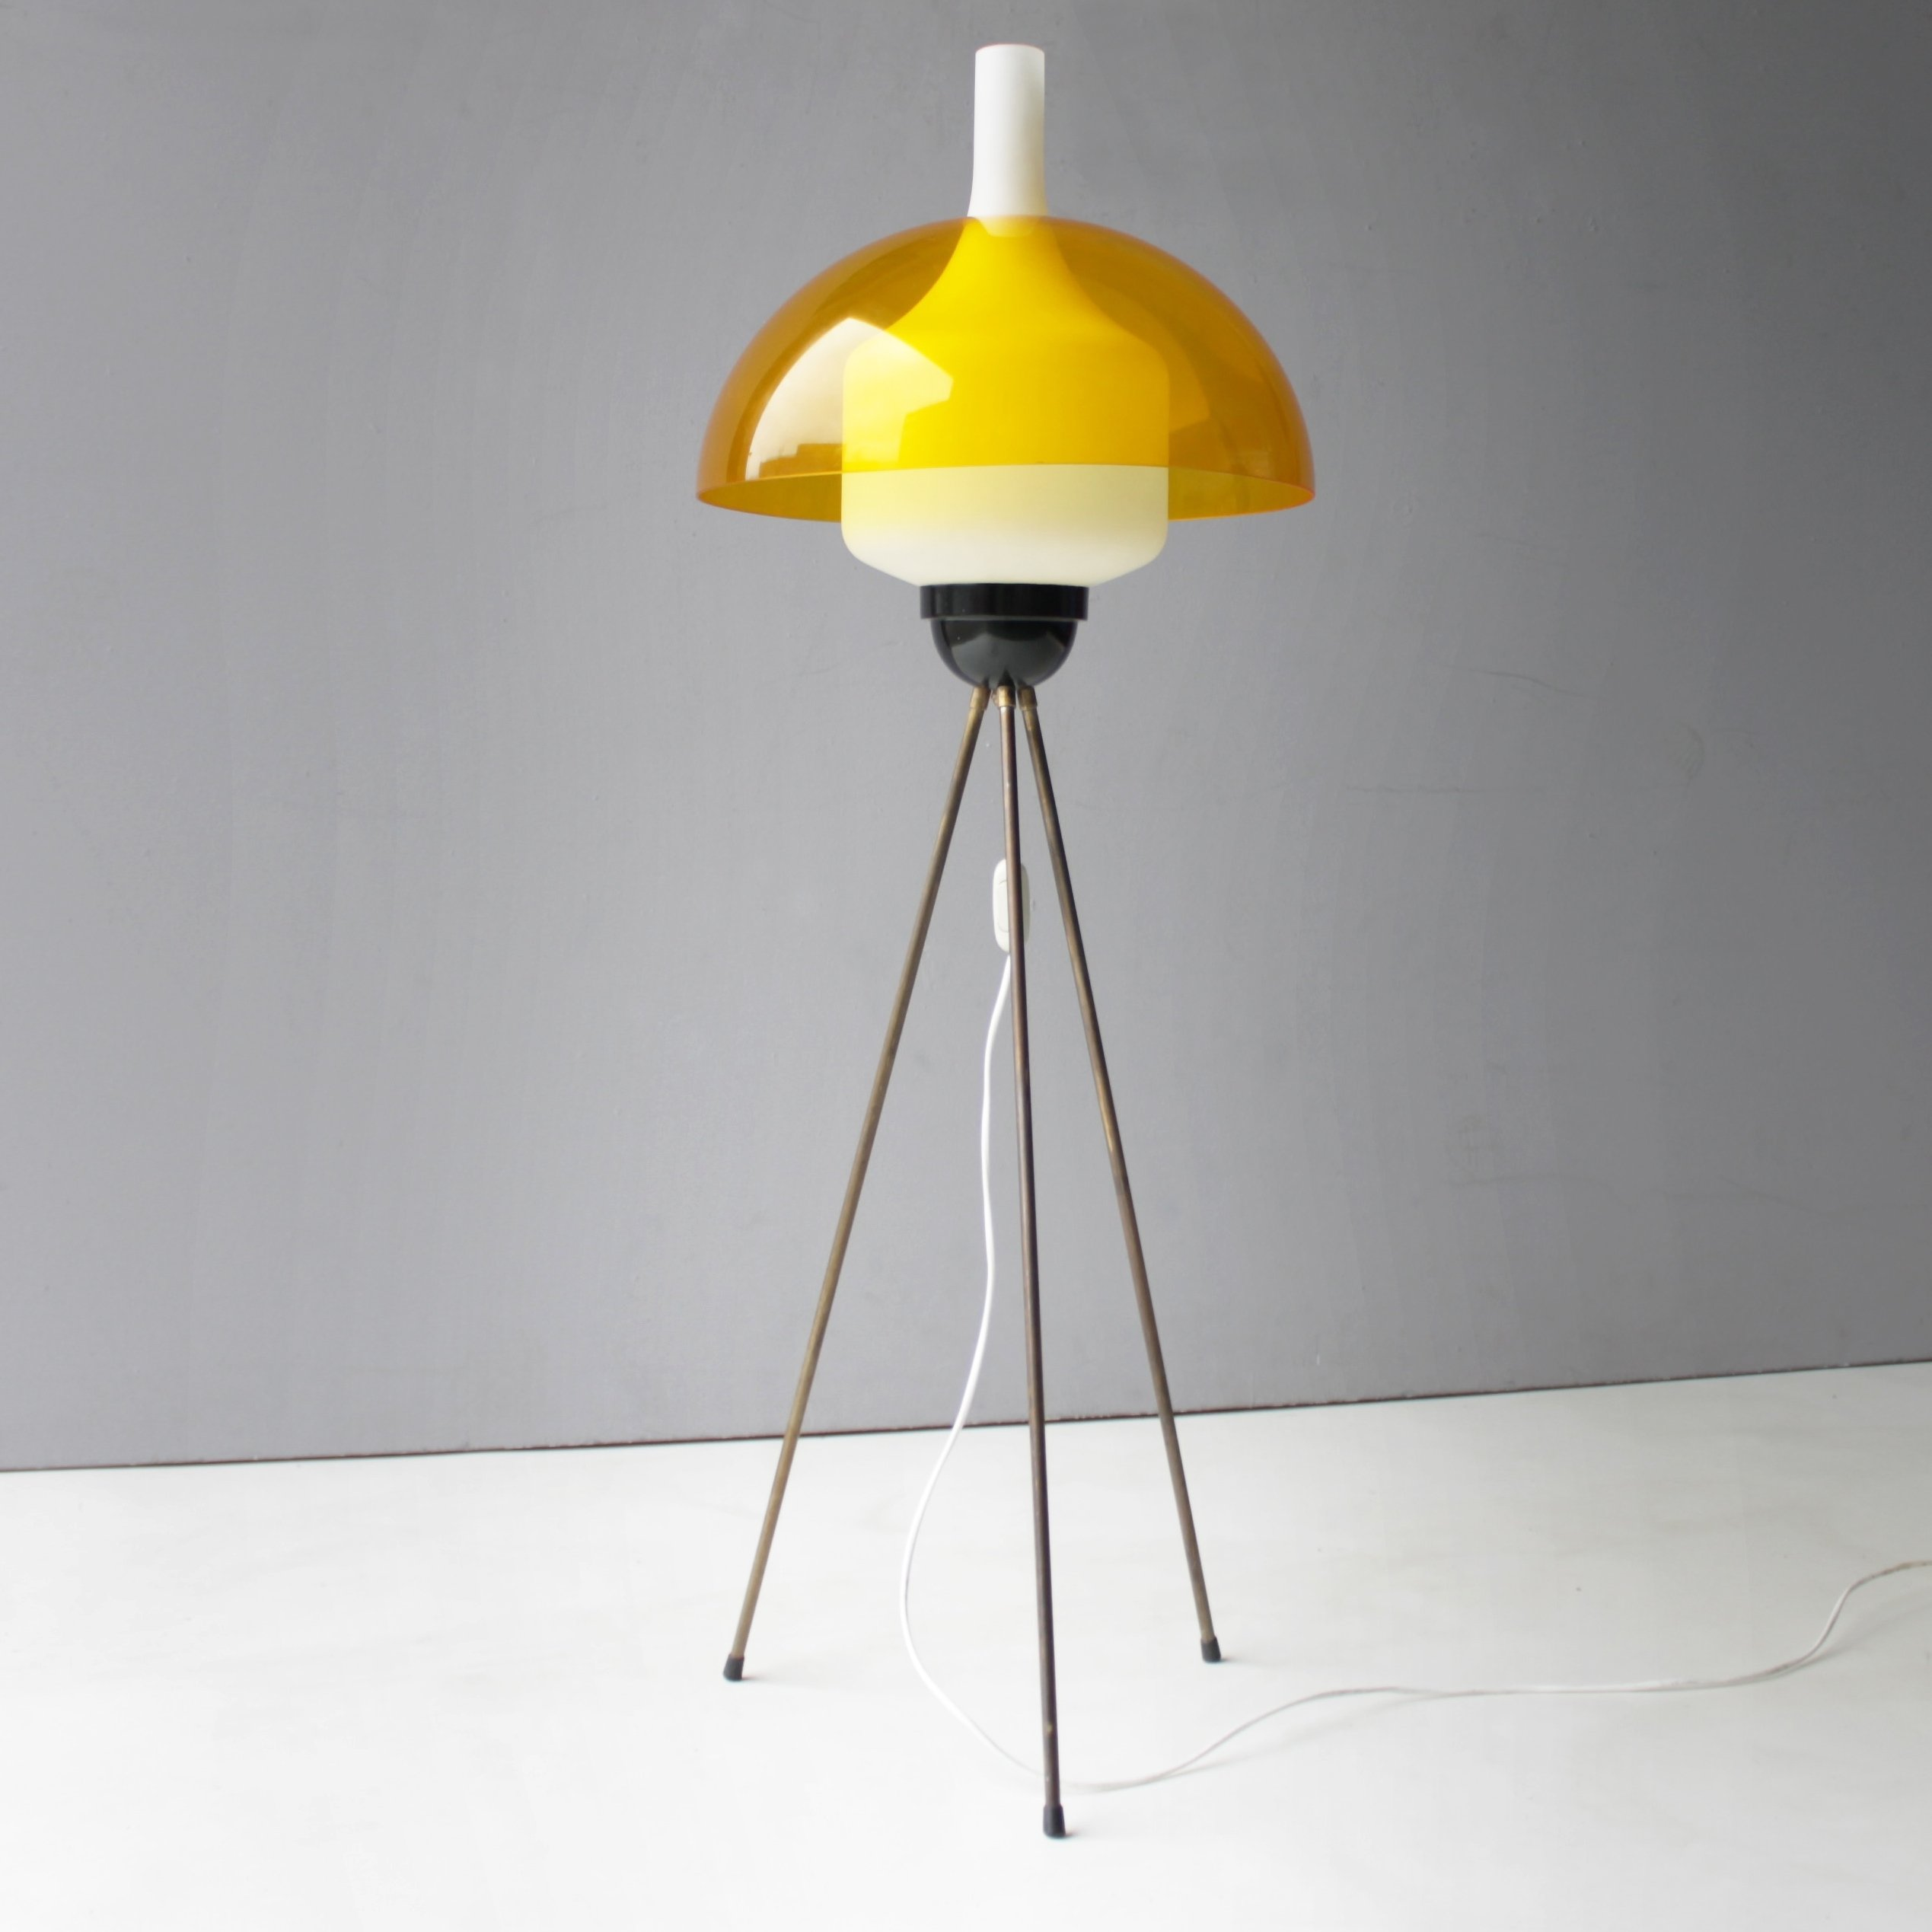 Tripod Floor Lamp By Stilux Italy 61184